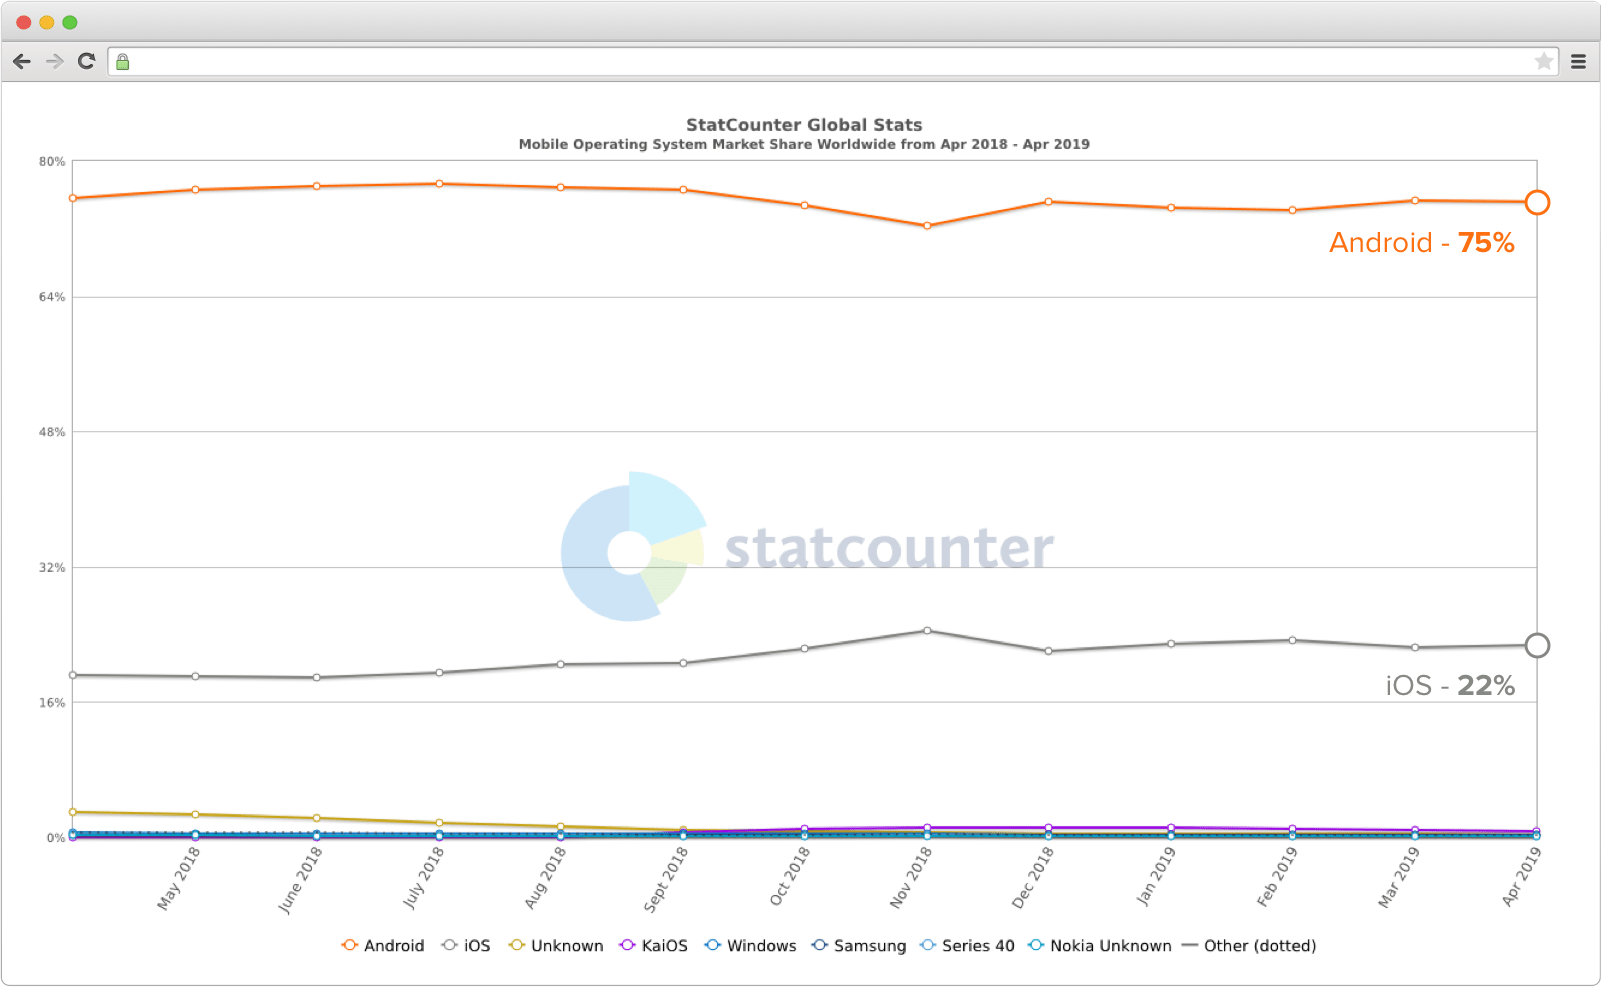 Android vs iOS market share worldwide on a graph